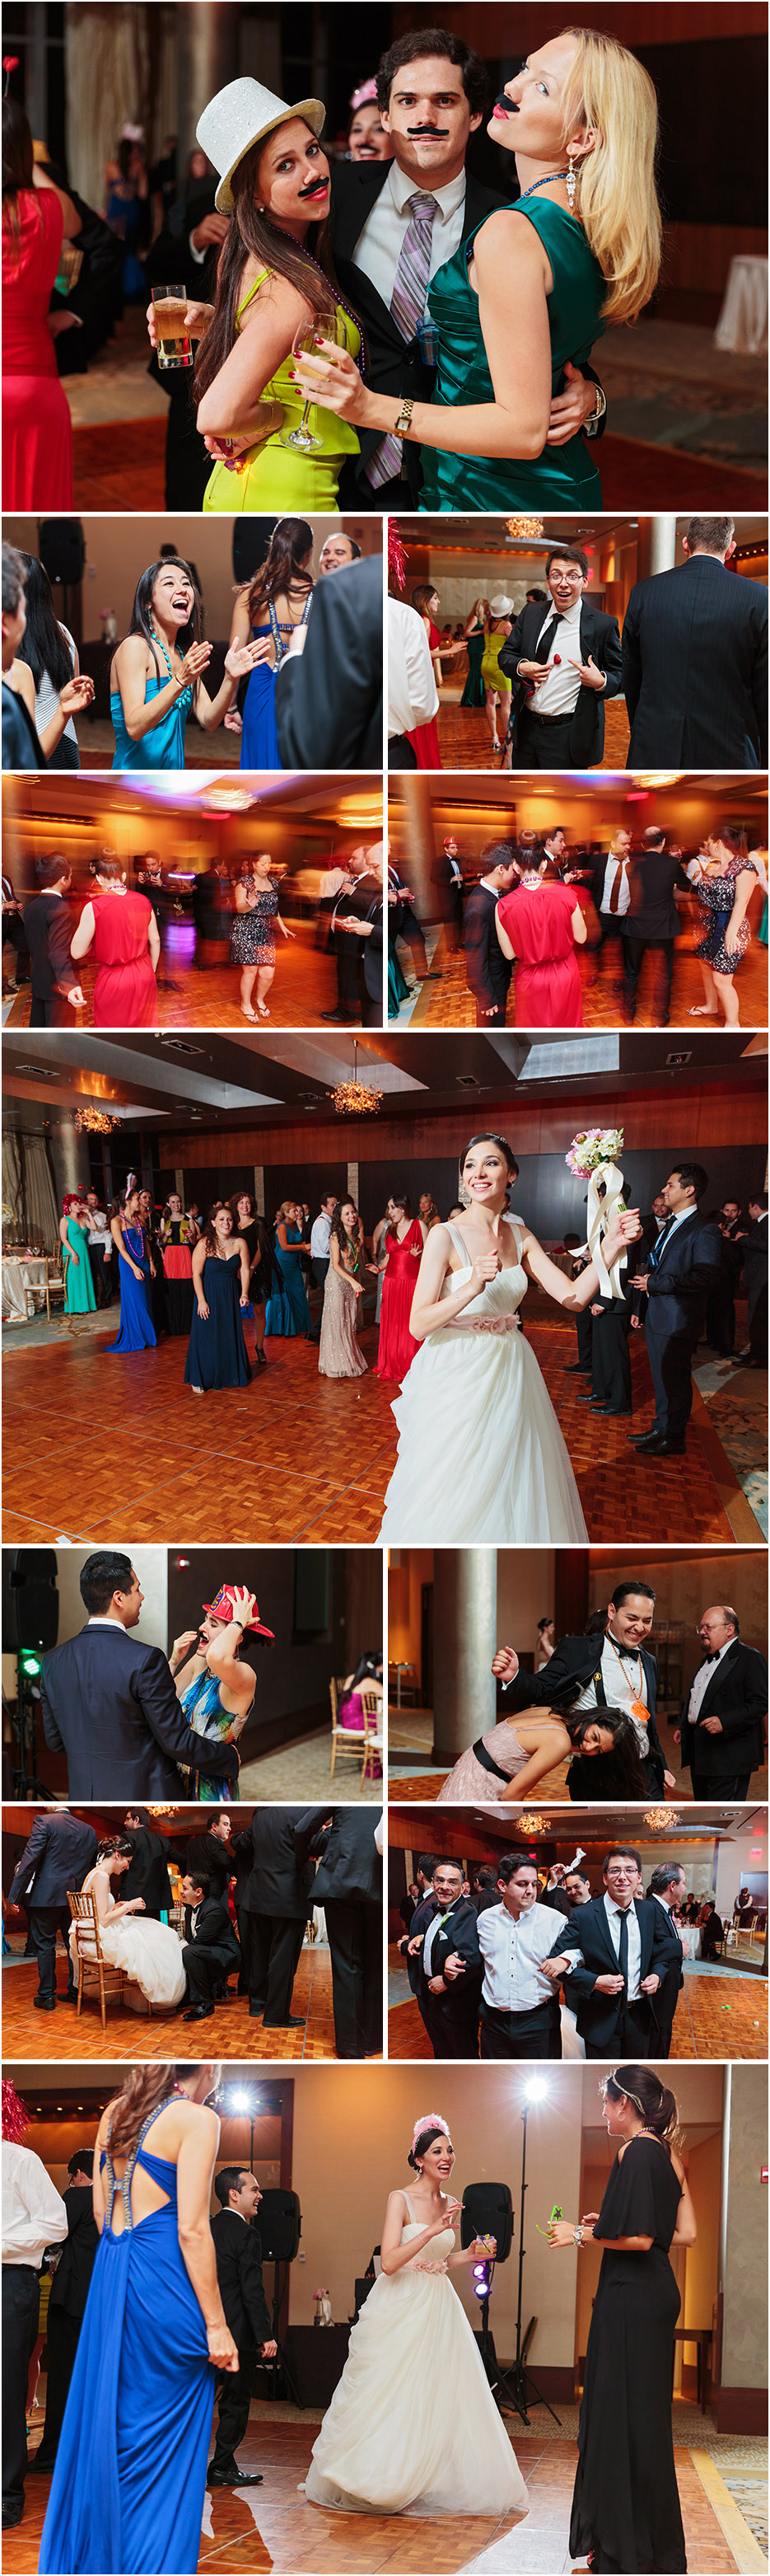 WEDDING RITZ CARLTON BOSTON COMMON